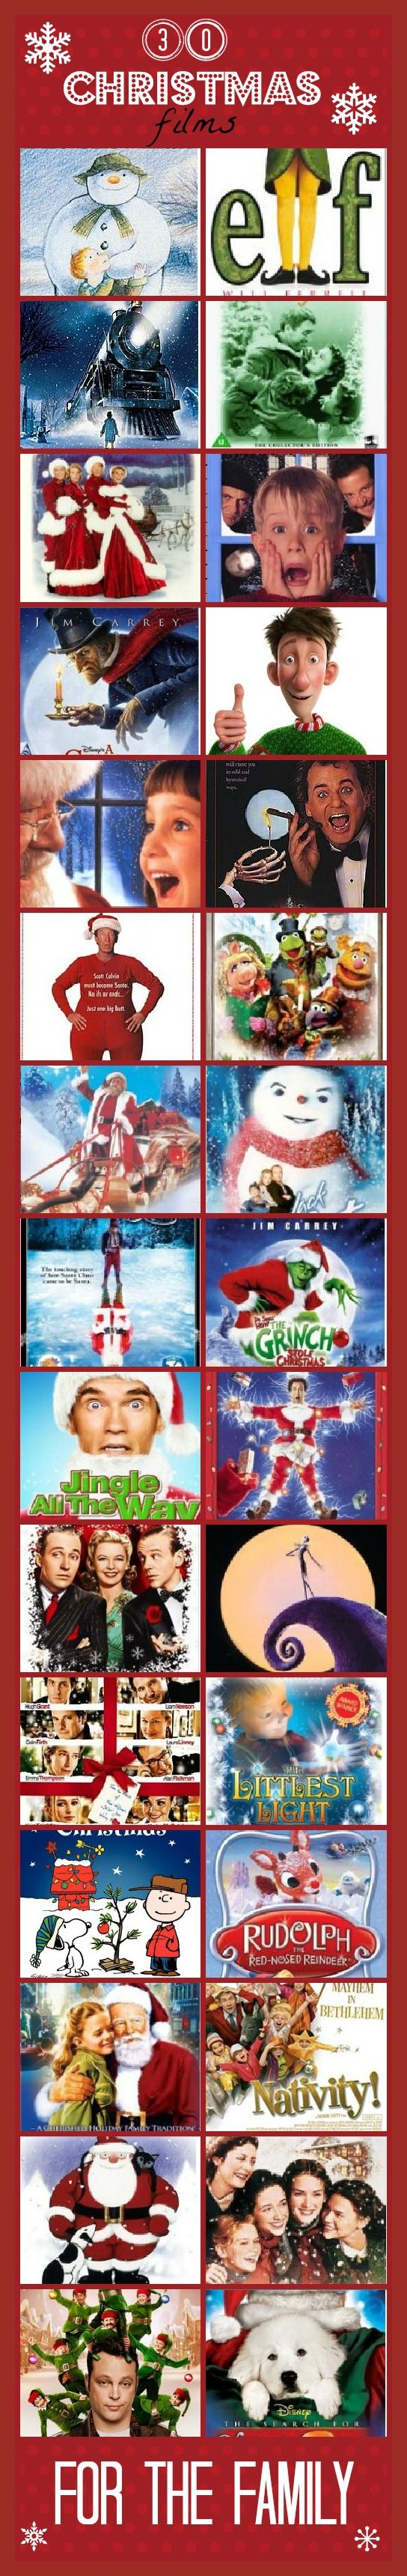 30 of the best CHRISTMAS movies for the family - is your favourite here? @Lauren Gilmore - speaking of Christmas movies... :)